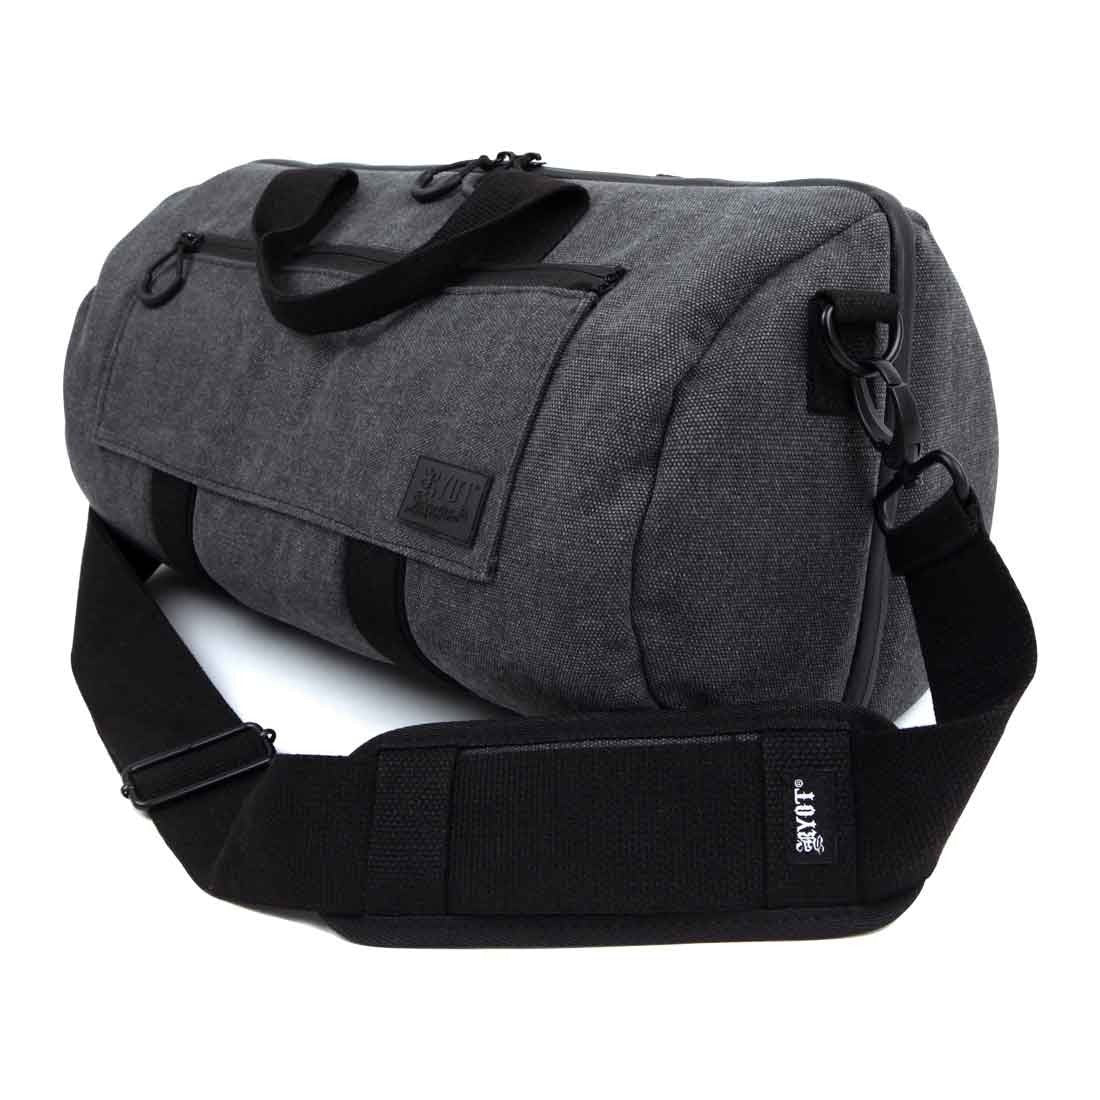 Smell Safe Pro Duffle Bag - Vapefiend UK